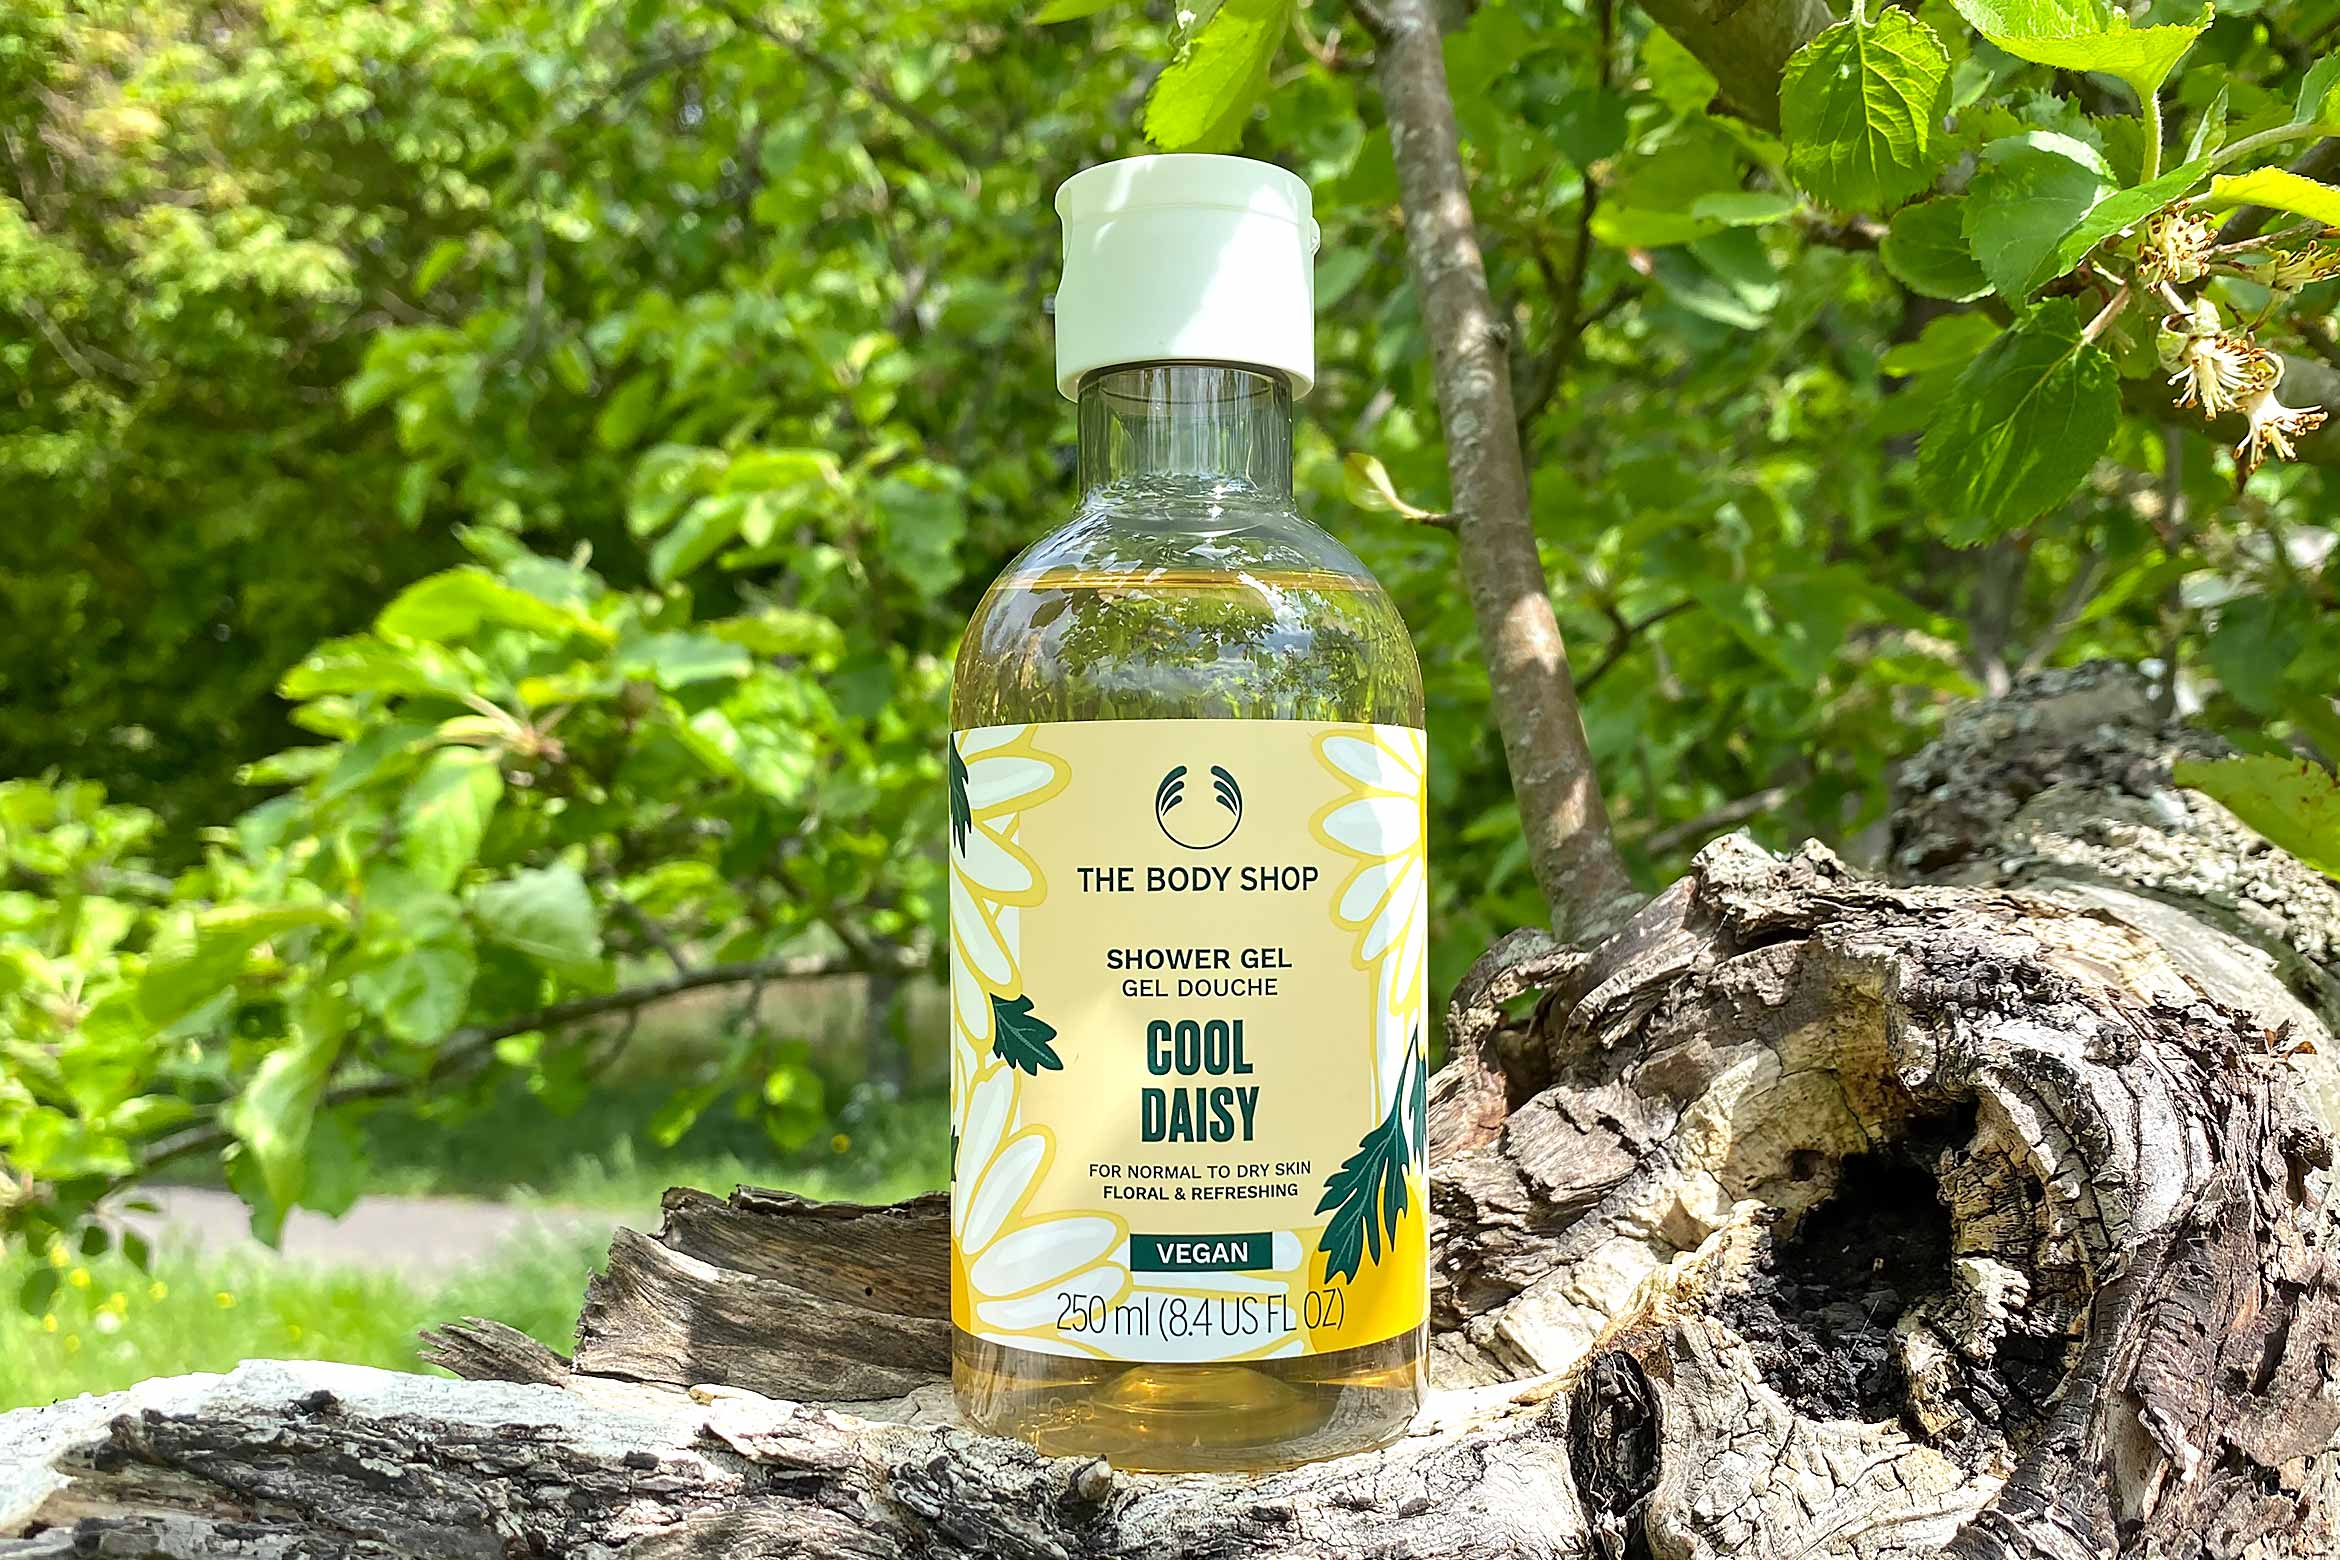 the body shop cool daisy shower gel review